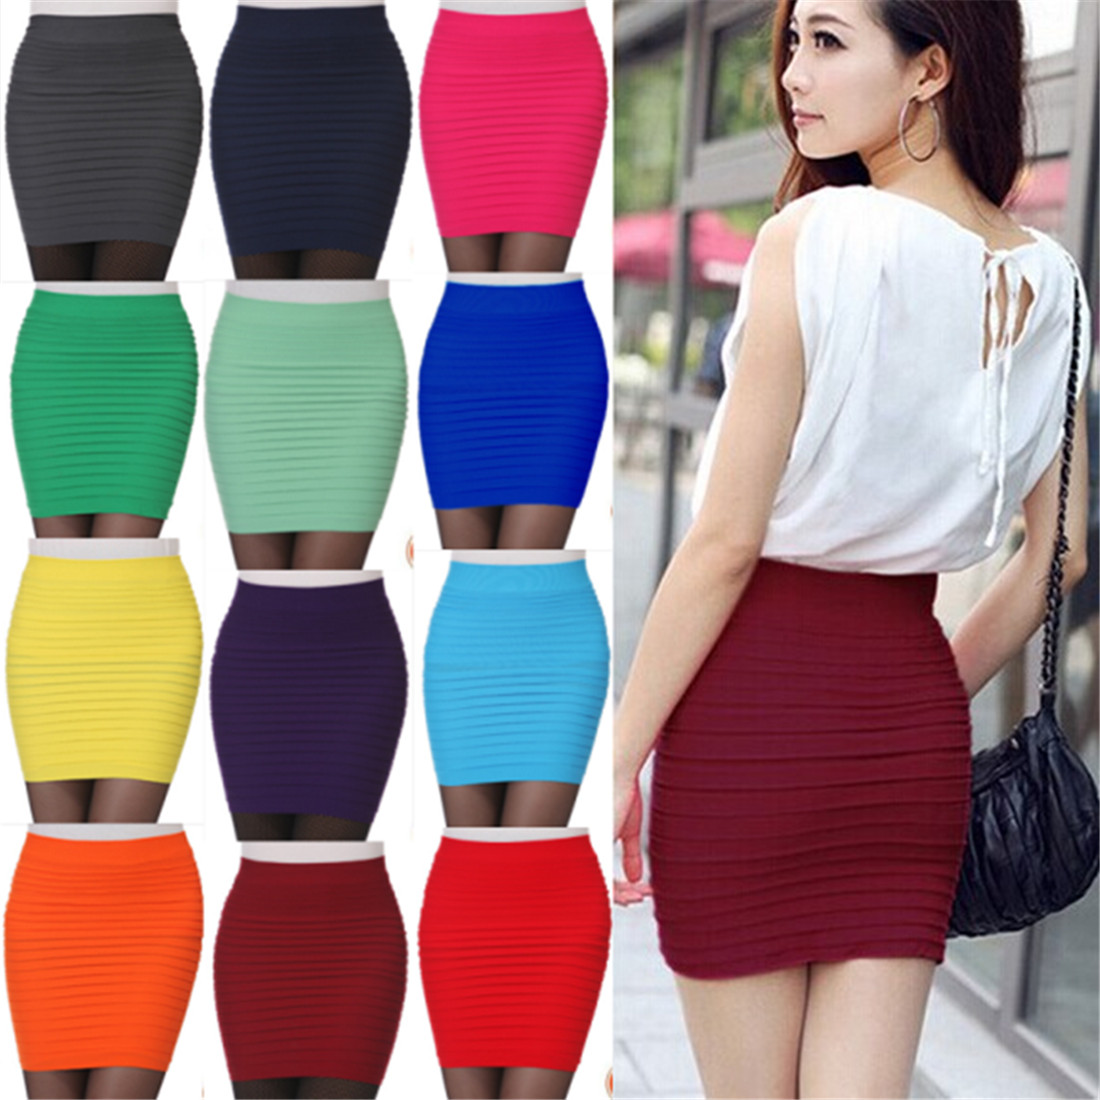 Pleated-Skirt Elastic Business Office Bodycon Pink Blue High-Waist Short Black Solid-Color